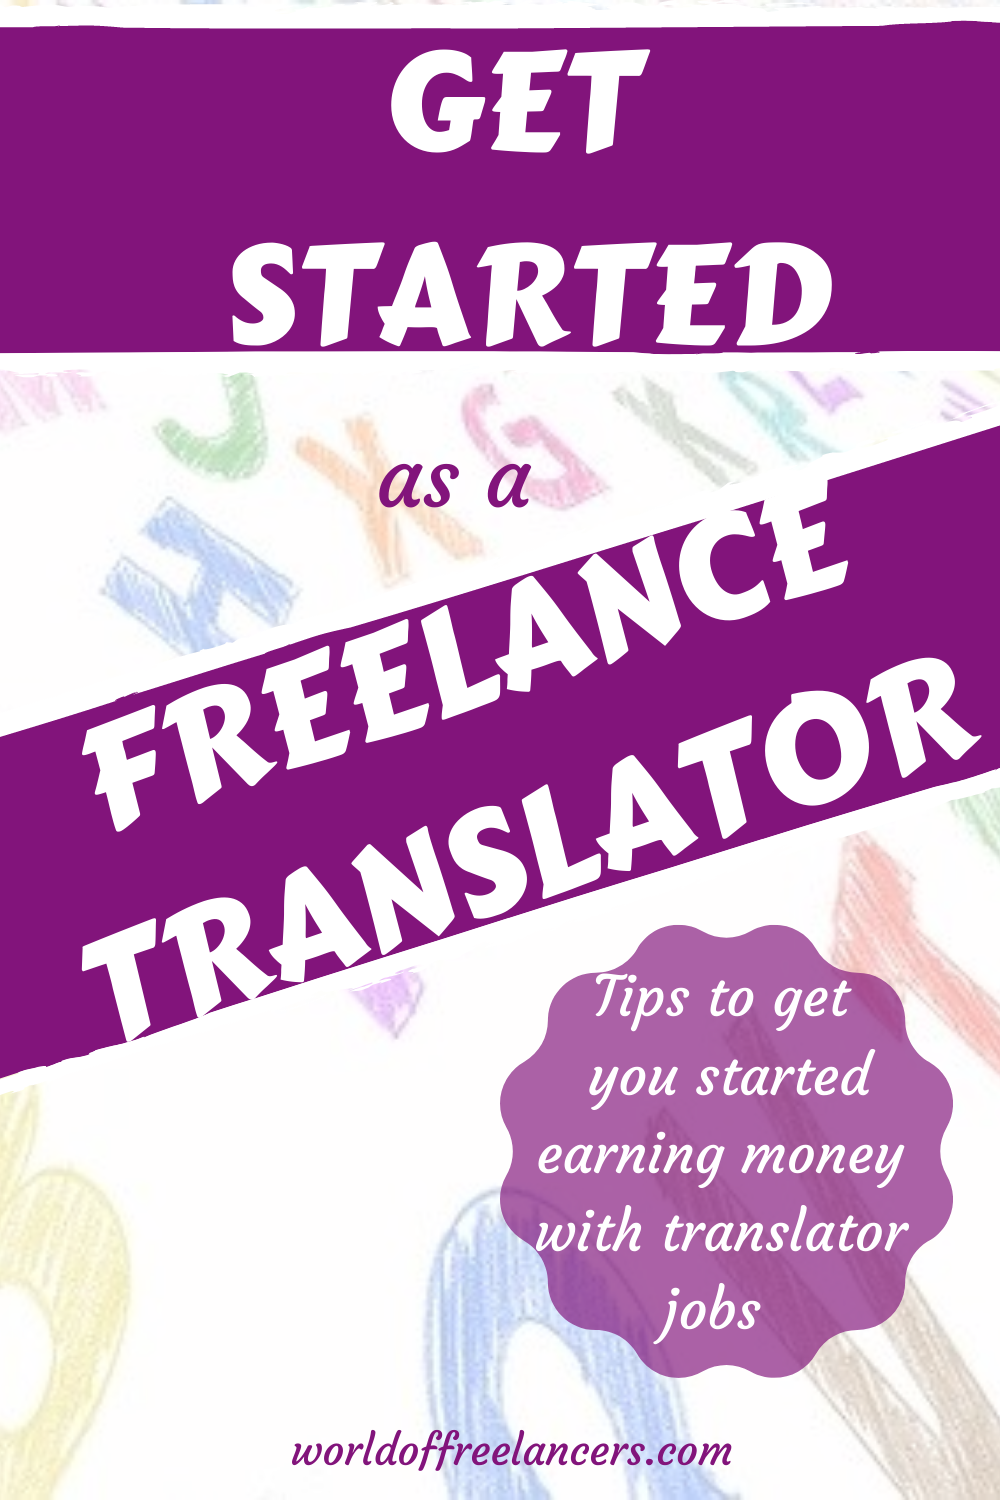 Colorful scattered letters of the alphabet Pinterest image with text in purple and white saying get started as a freelance translator - tips to get you started earning money with translator jobs